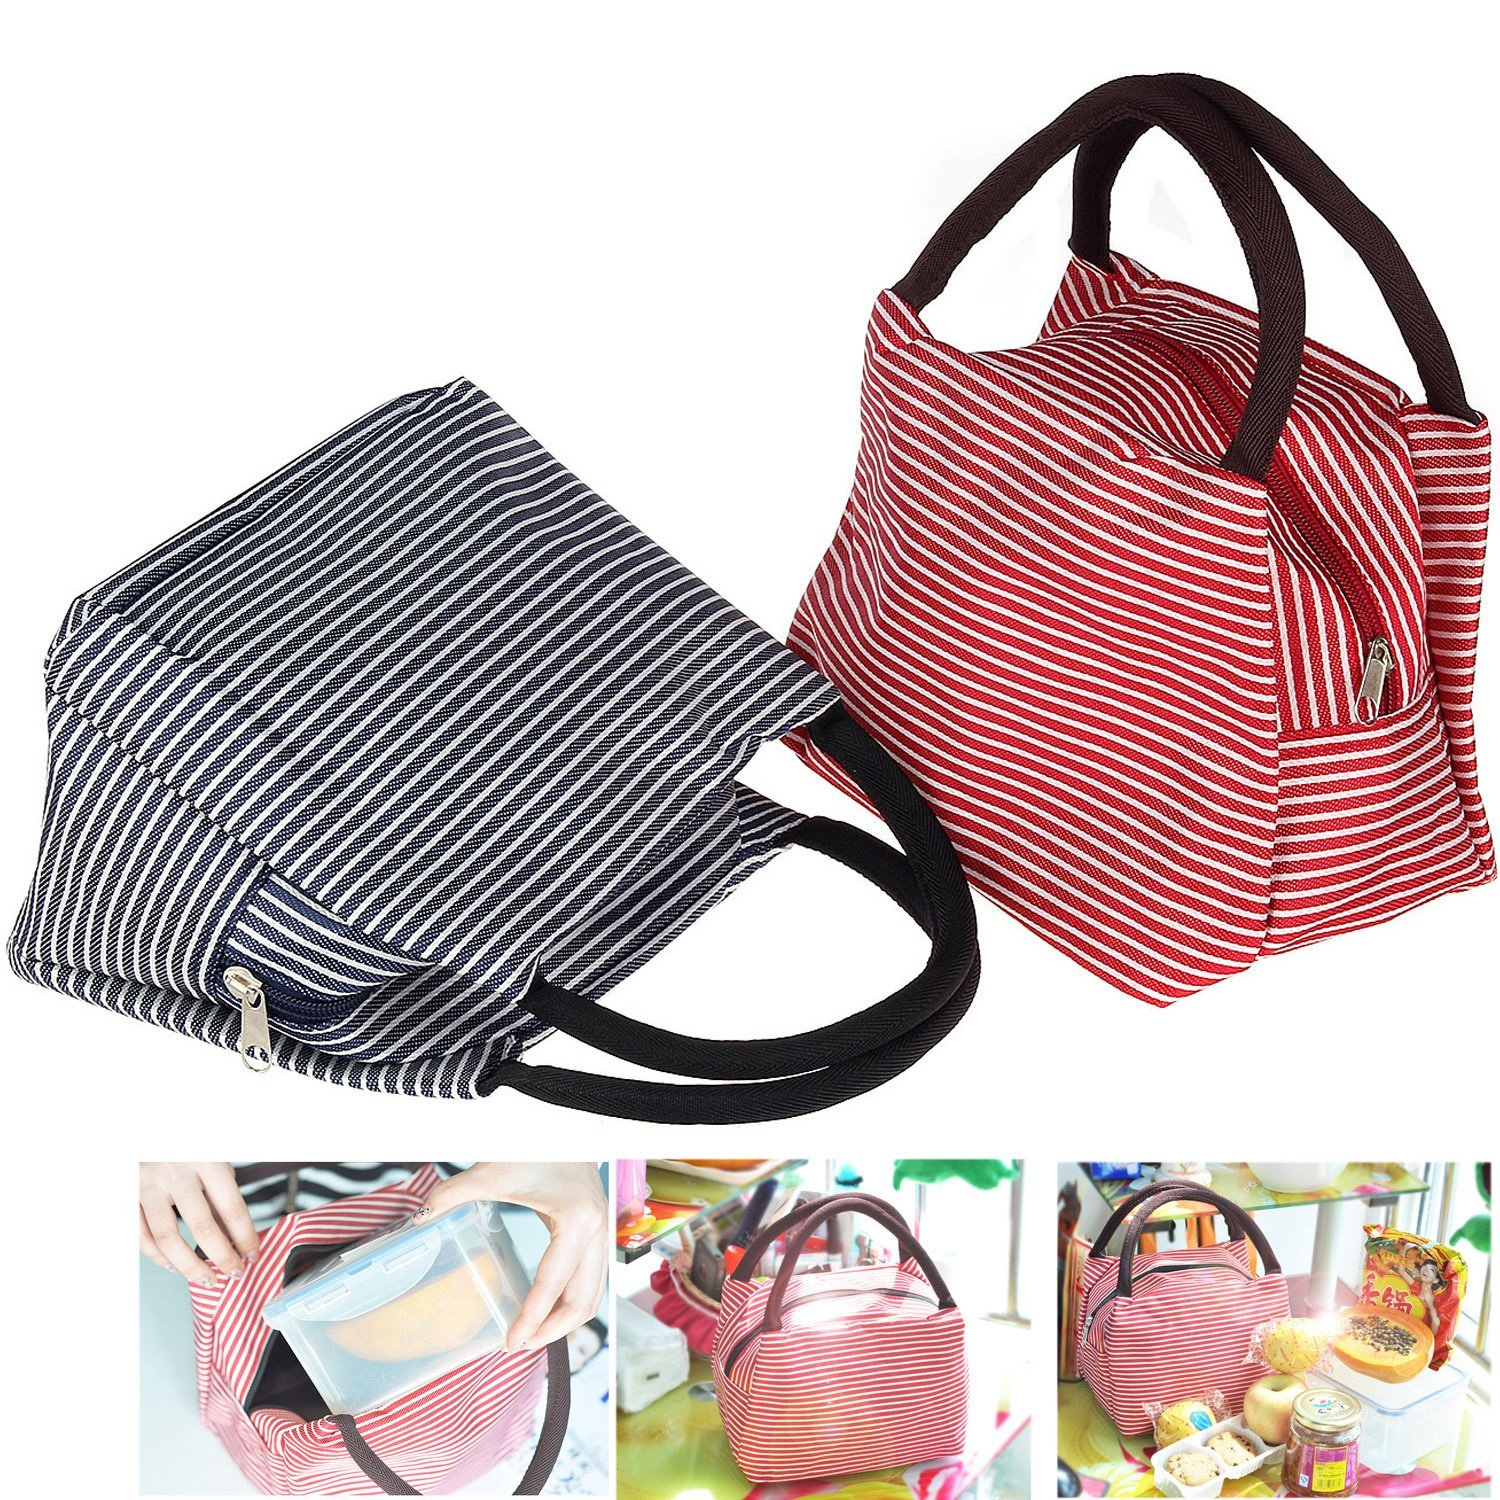 1 Striped Adult Lunch Bag